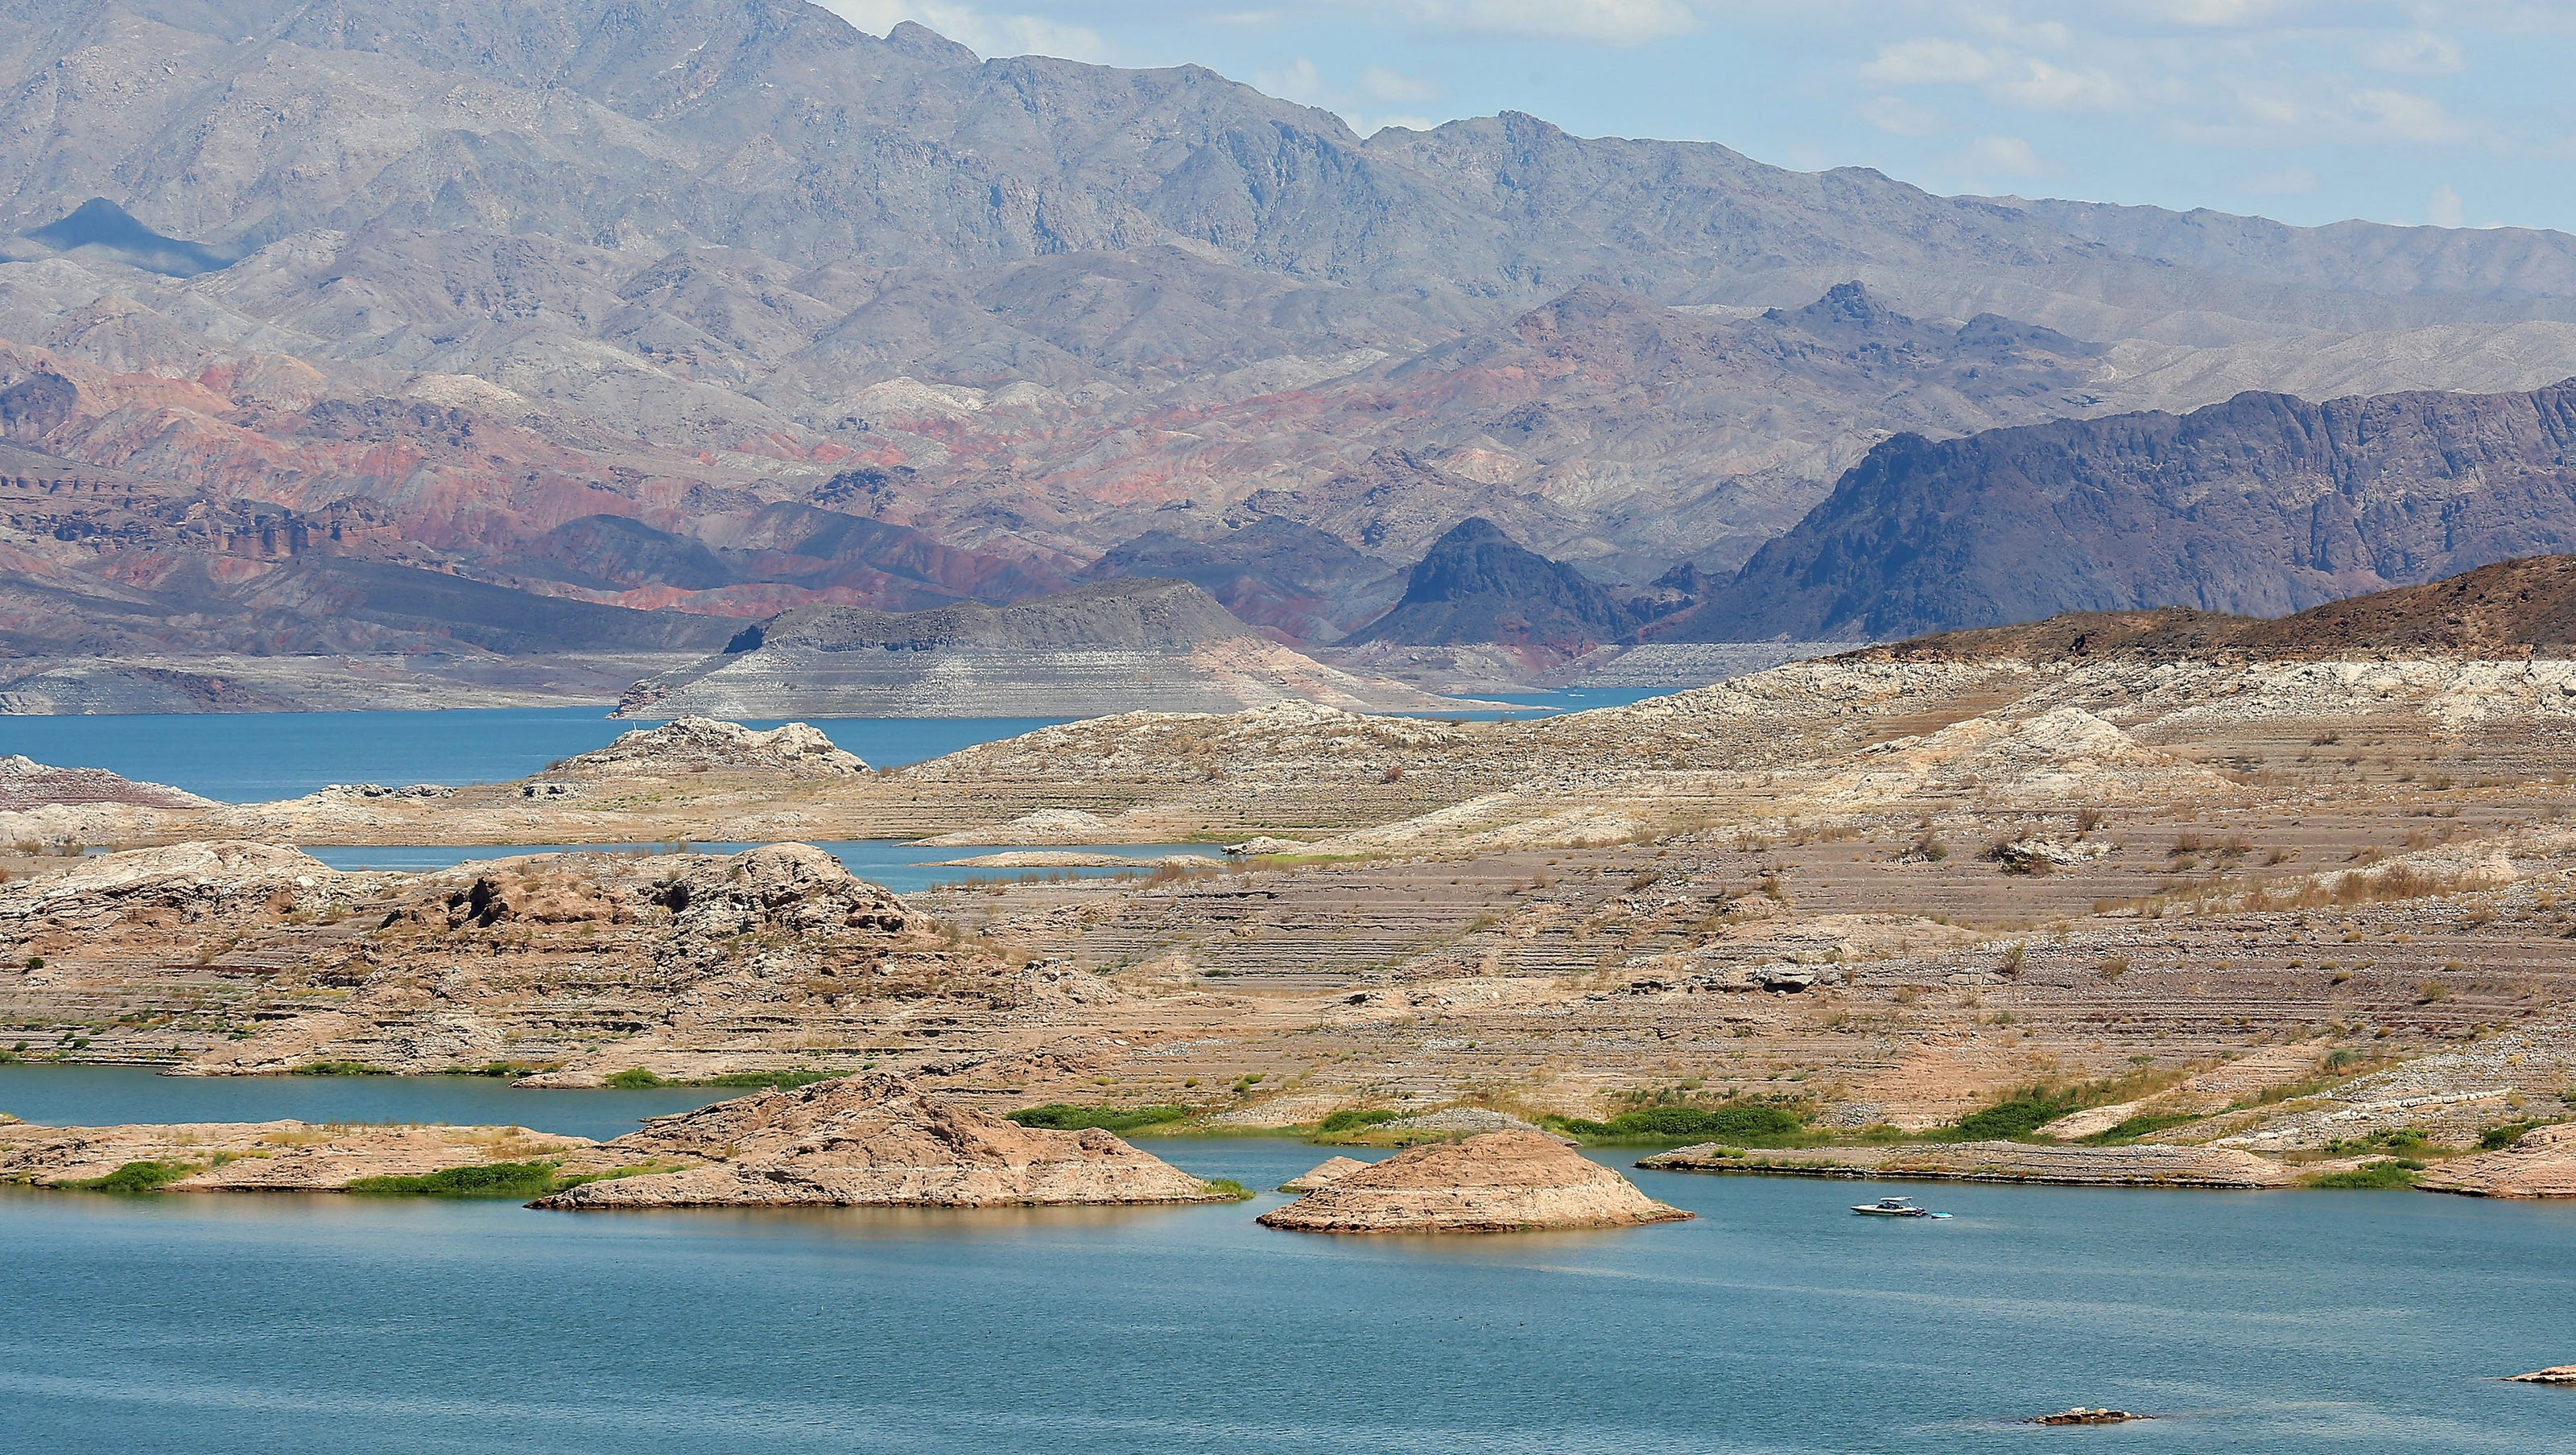 With Colorado River dwindling, author finds reasons to be optimistic